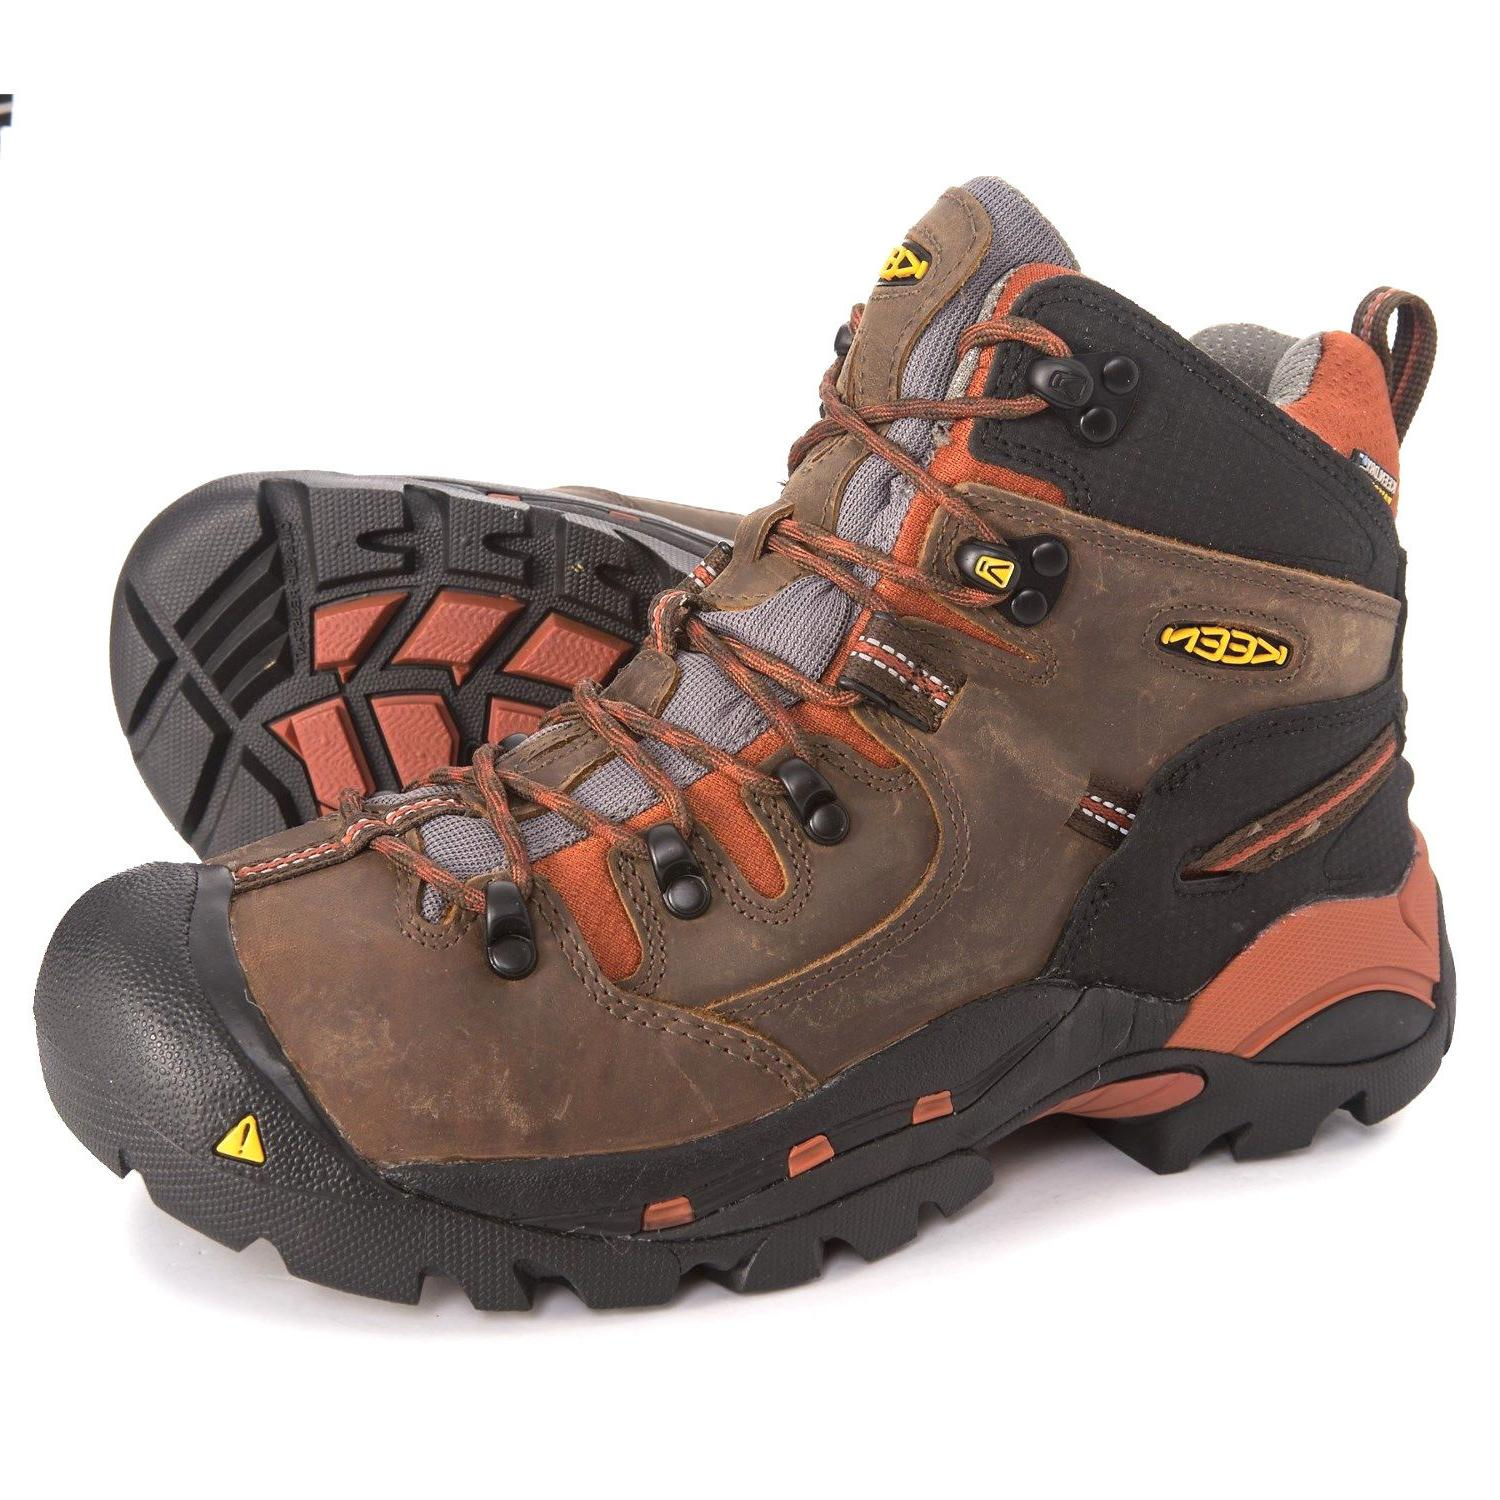 KEEN PITTSBURGH Mid Work Hiker Boots